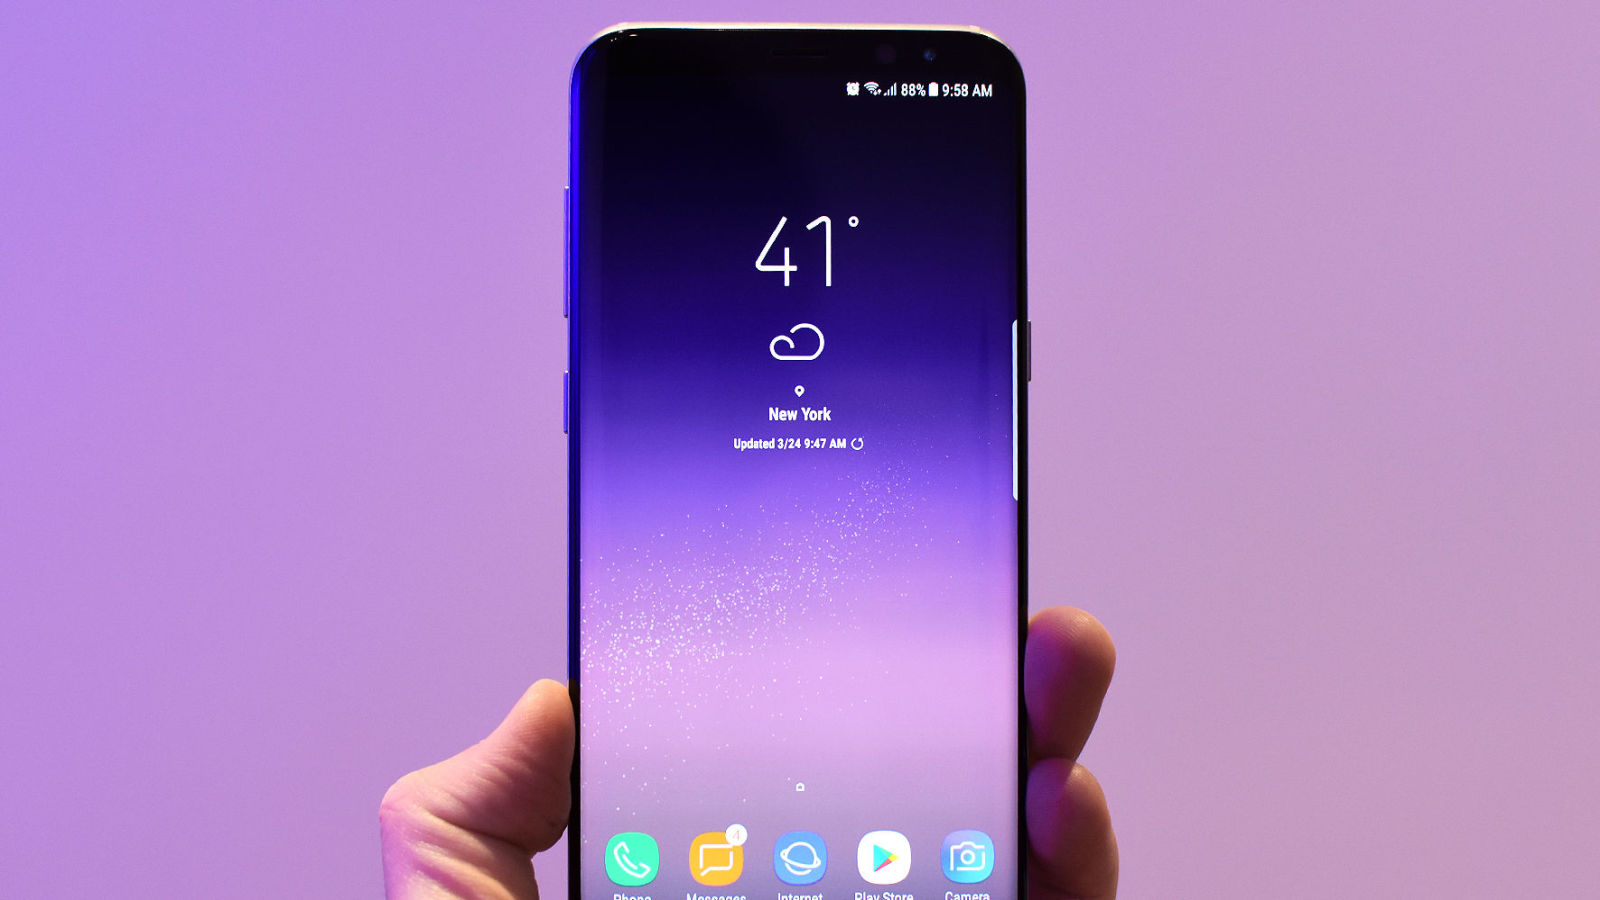 Hd wallpaper samsung galaxy s8 - Samsung Announces The Launch Of The Galaxy S8 And Galaxy S8